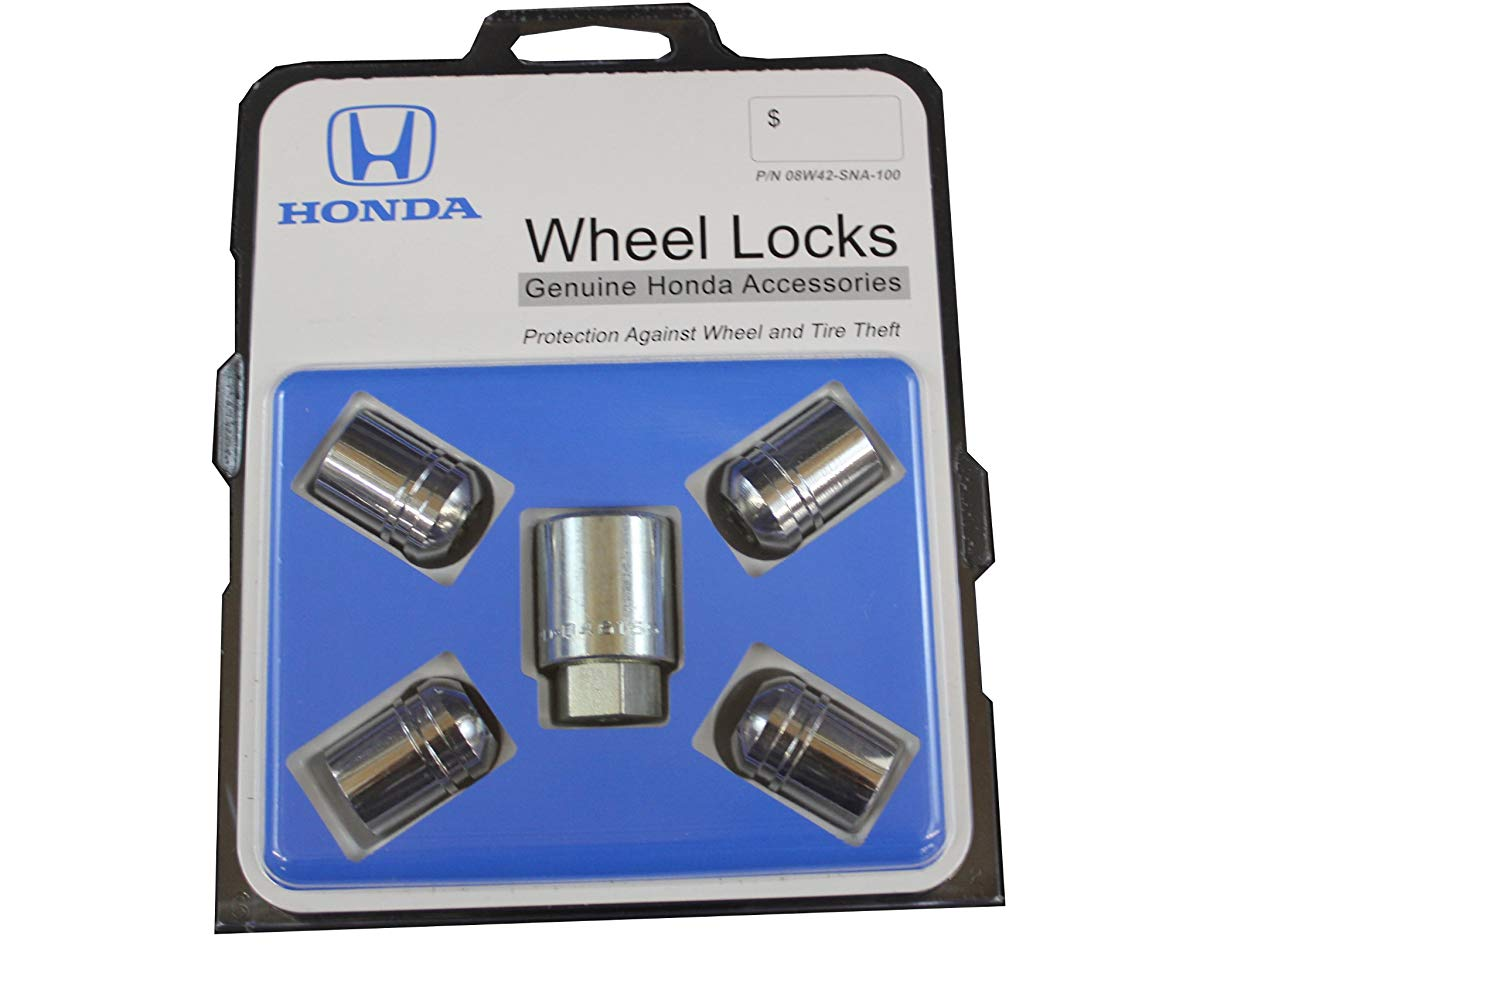 Honda Genuine Wheel Lock 08W42-SNA-100